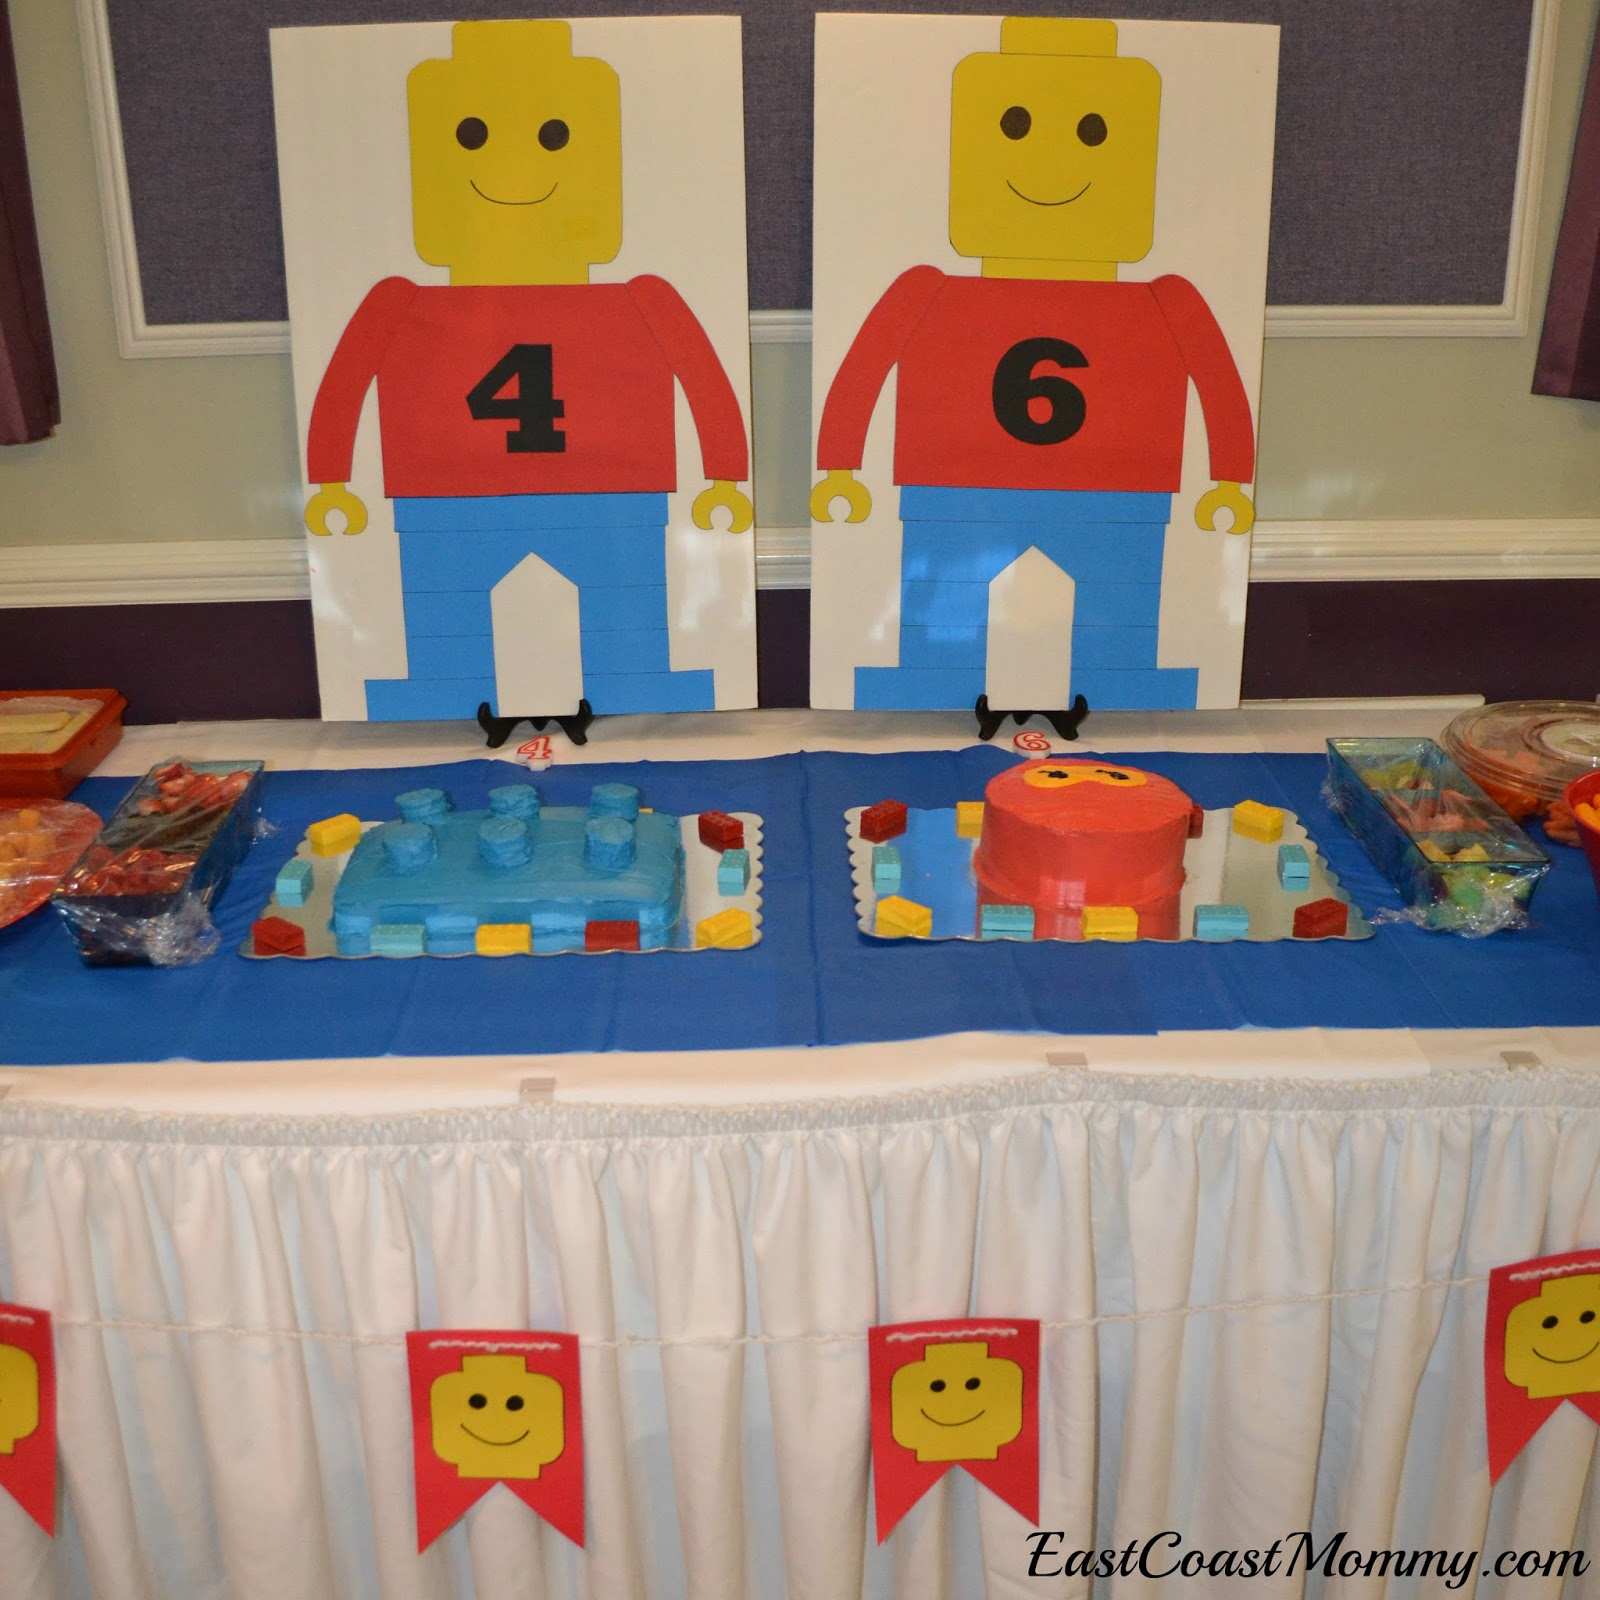 East coast mommy the ultimate diy lego party for Lego diy